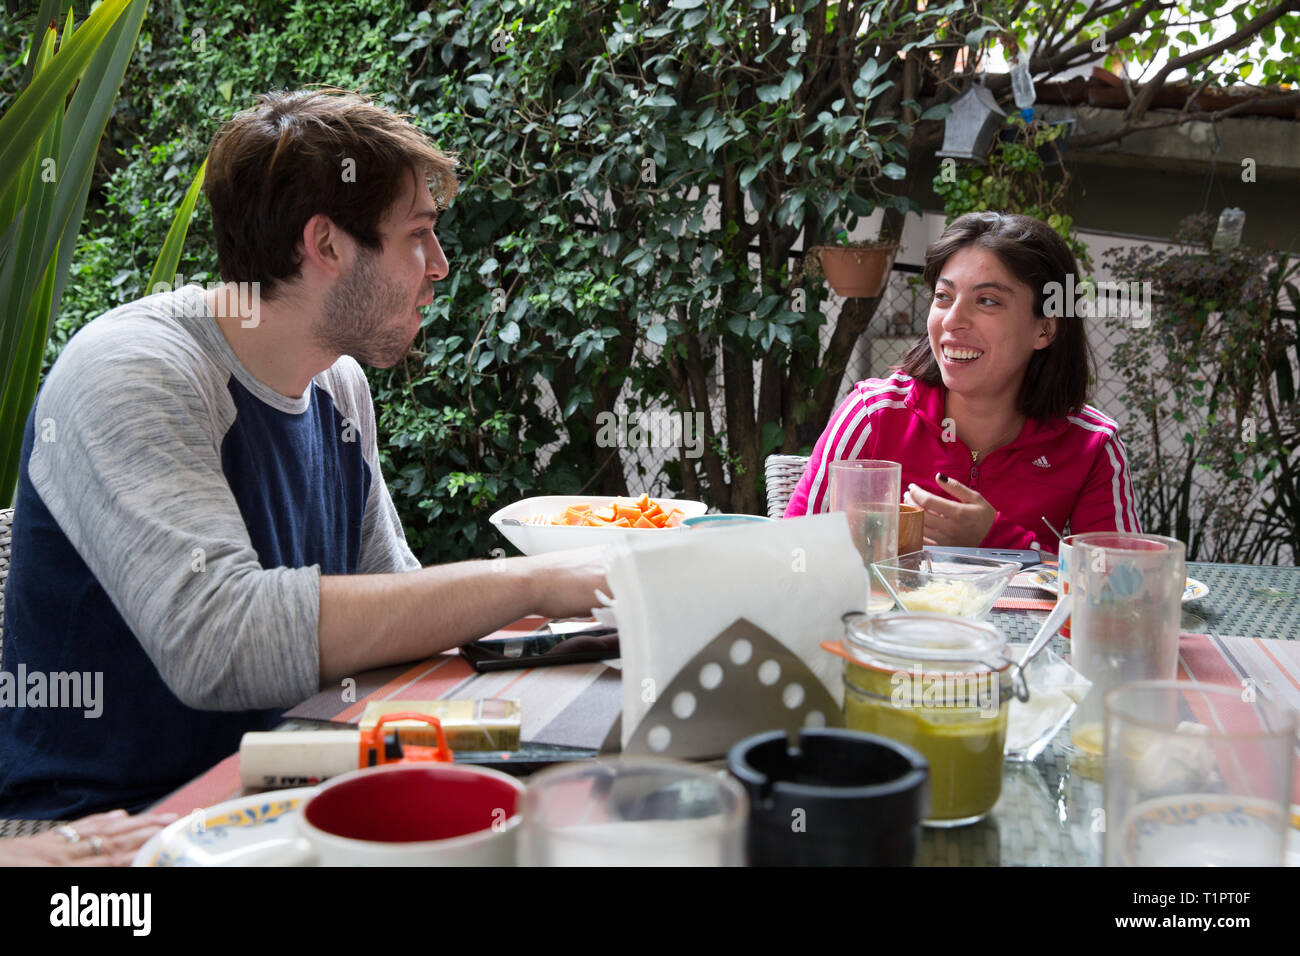 Macarena Cruz Ceballos (R), 23, one of the defenders of the Selección femenil de México de hockey sobre hielo, eats breakfast with her family and boyfriend at her home in Mexico City, Mexico on March 17, 2019. Macarena lives with her parents in San Jerónimo Lídice, an affluent residential neighborhood in Mexico City. Her brother lives in Canada, where he plays ice hockey in the Junior League. She studies economics and finance at the Monterrey Institute of Technology, at the Mexico City campus. She started figure skating at age 5 and ice hockey at age 12. She is one of the assistant captains of Stock Photo